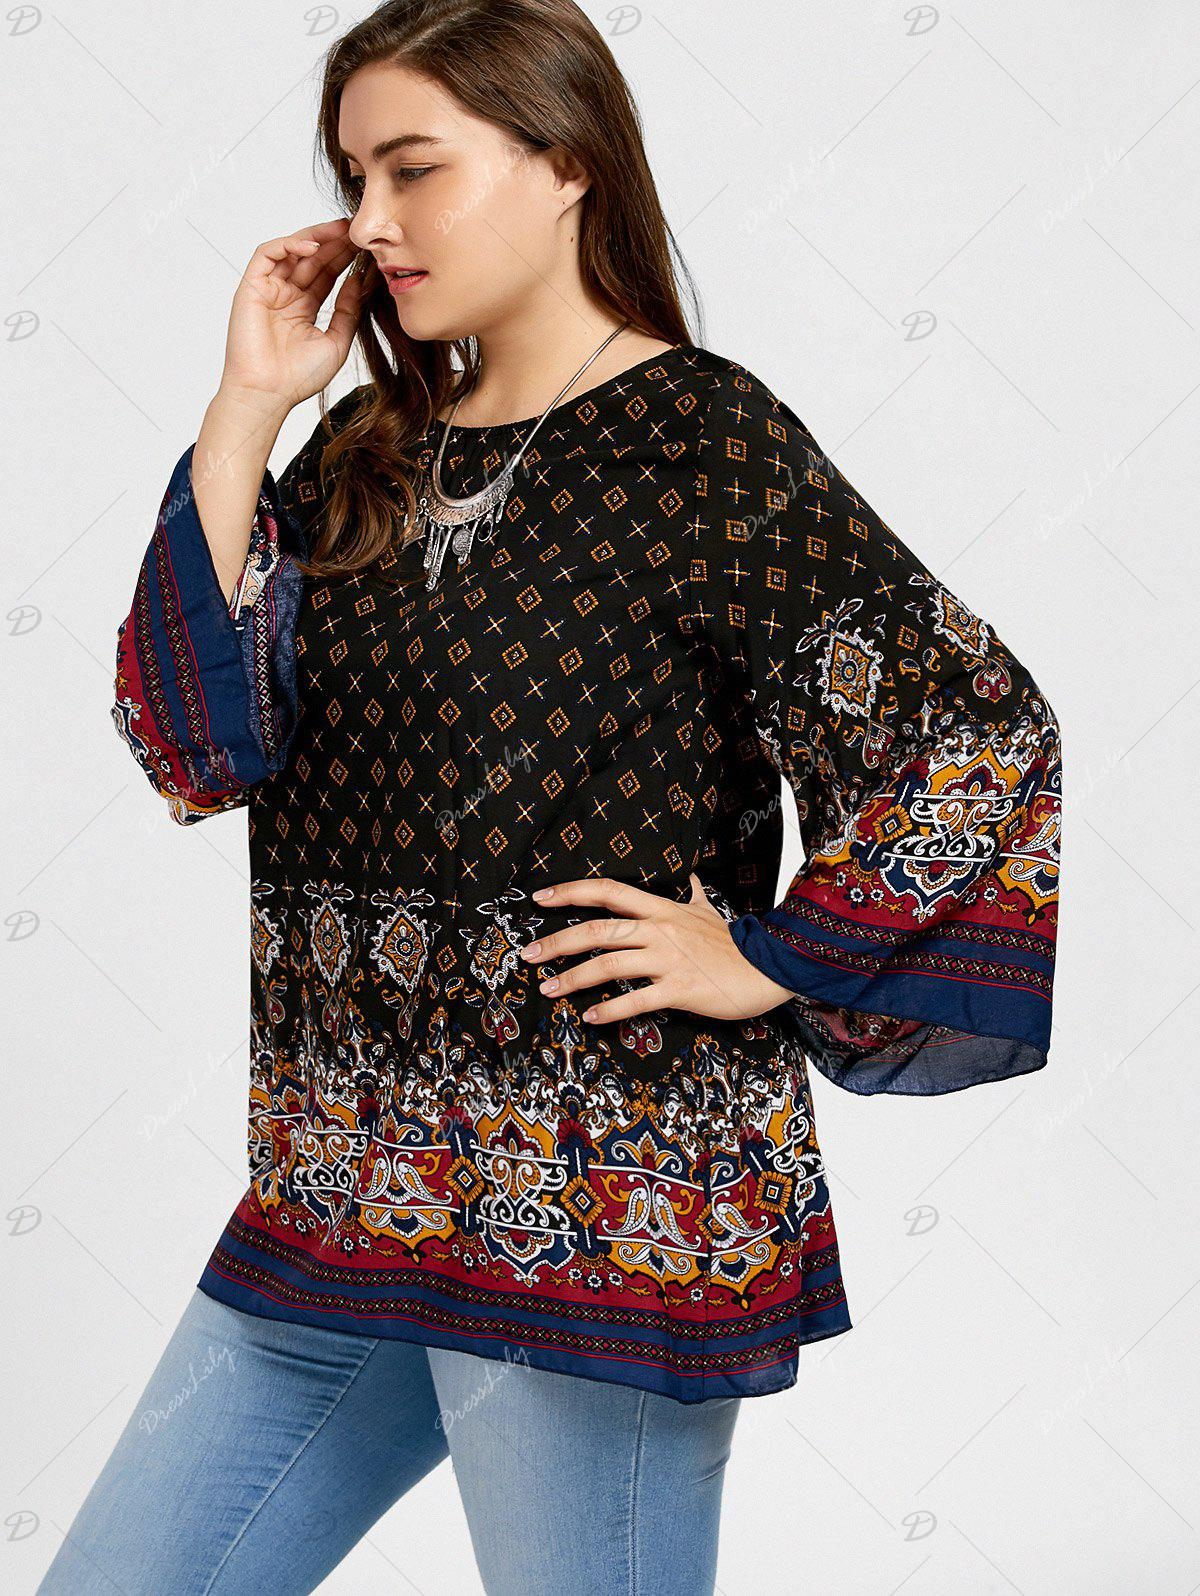 Buy New Womens Plus Size Blouse Tops at Macy's. Shop the Latest Plus Size Blouses & Shirts for Women Online at specialtysports.ga FREE SHIPPING AVAILABLE! Macy's Presents: The Edit - A curated mix of fashion and inspiration Check It Out.